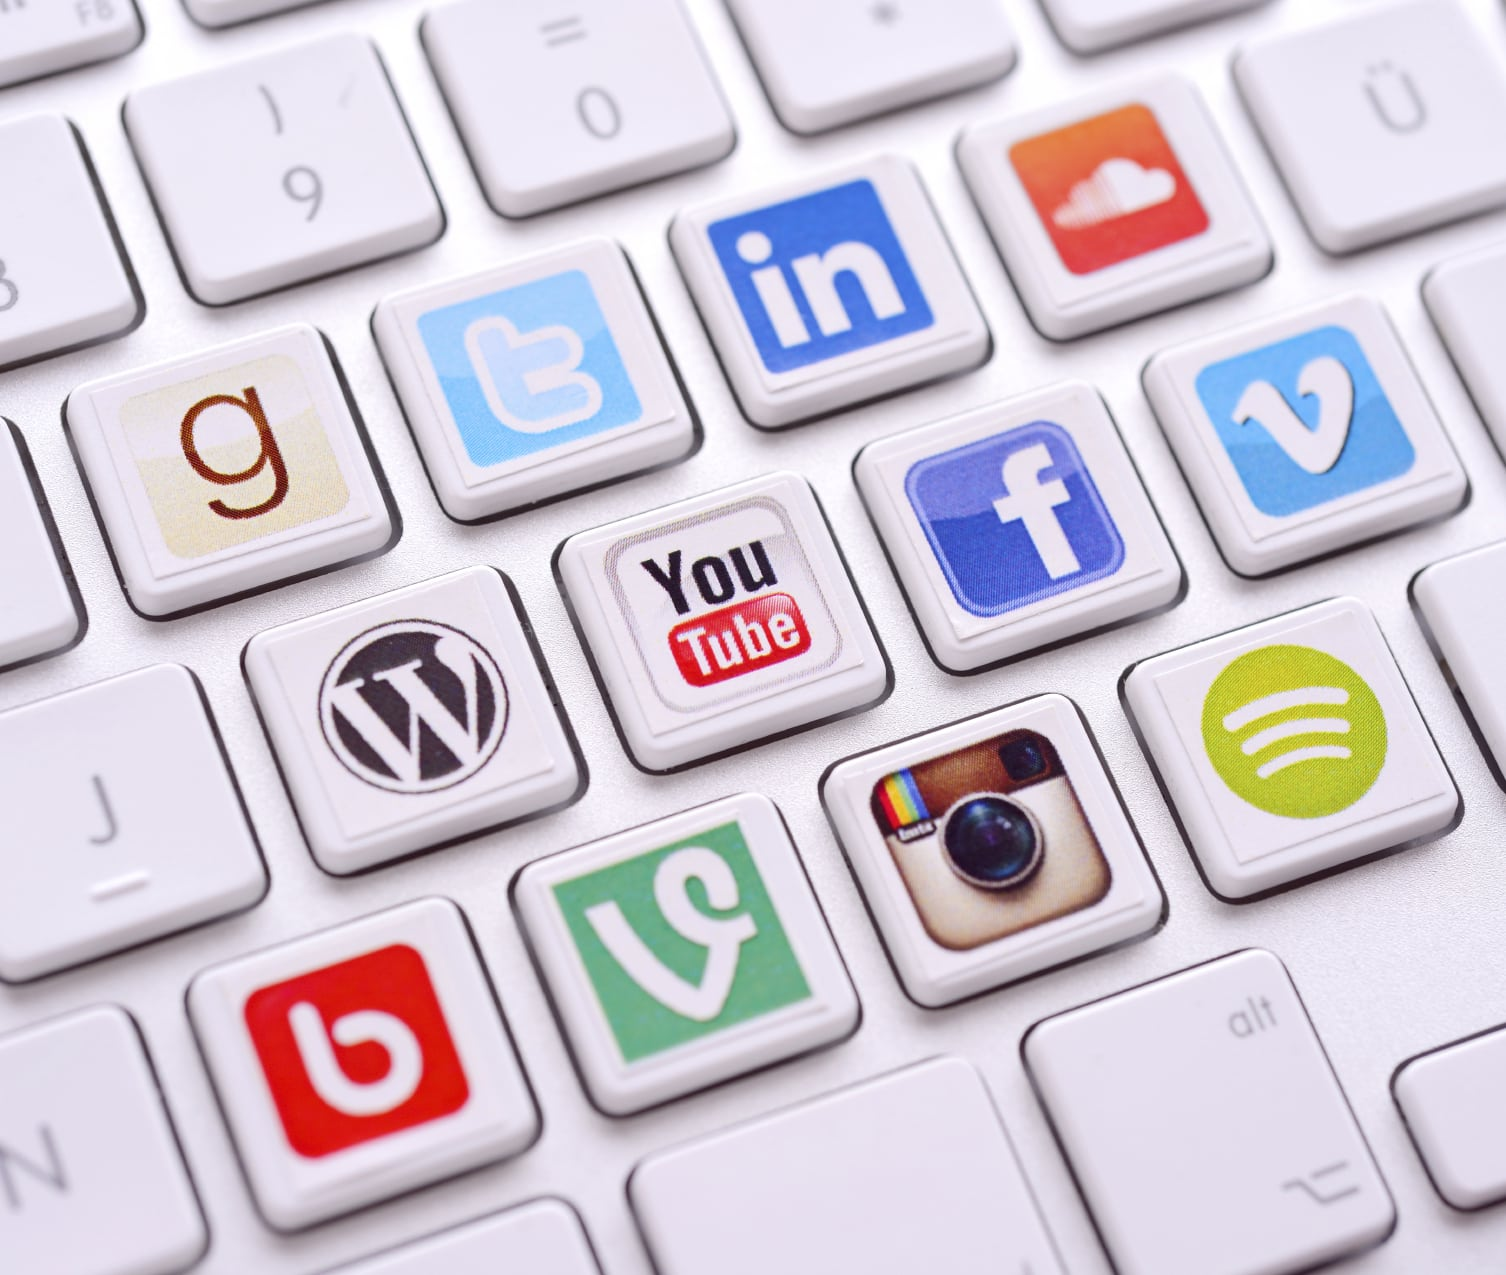 Odessa Injury Attorney Question: Are You Aware Of What You Post On Social Media?